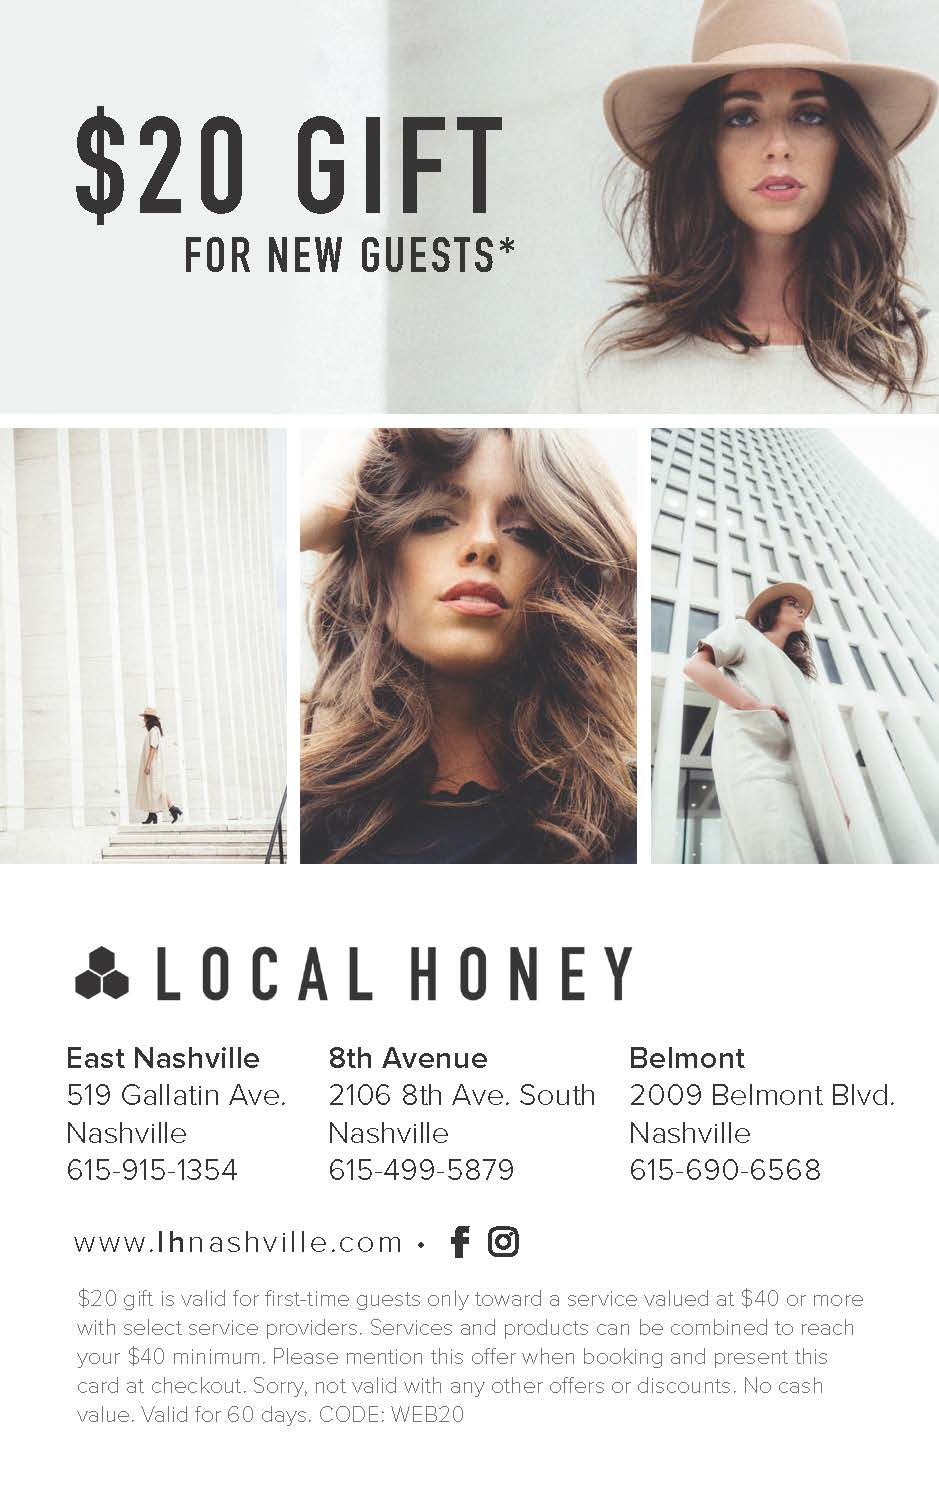 First Time at LH? - INTRODUCTORY OFFER FOR NEW GUESTS New to Local Honey Salon? Download our $20 gift and book an appointment today! Be sure to show this voucher upon checkout!***Offer redeemable at East Nashville, 8th Avenue, and Belmont locations